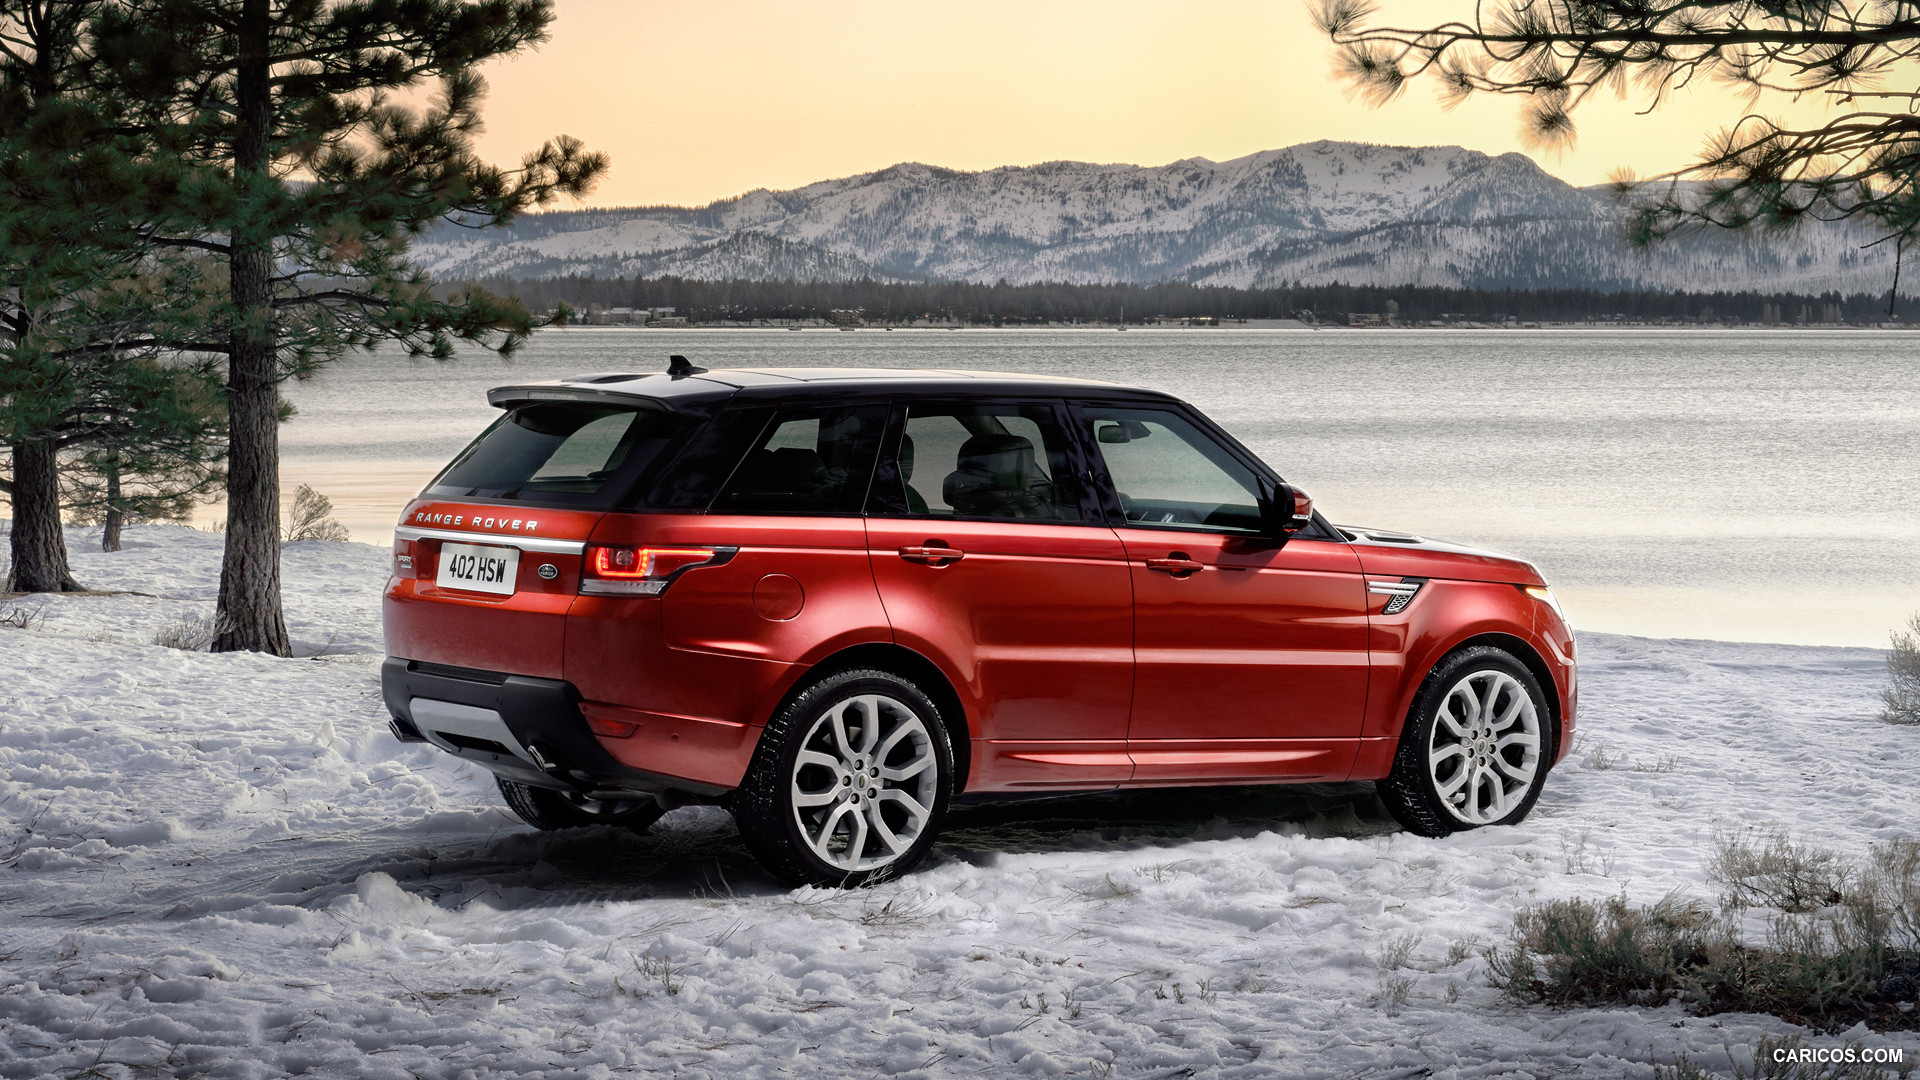 Red Range Rover Wallpaper Wallpapersafari